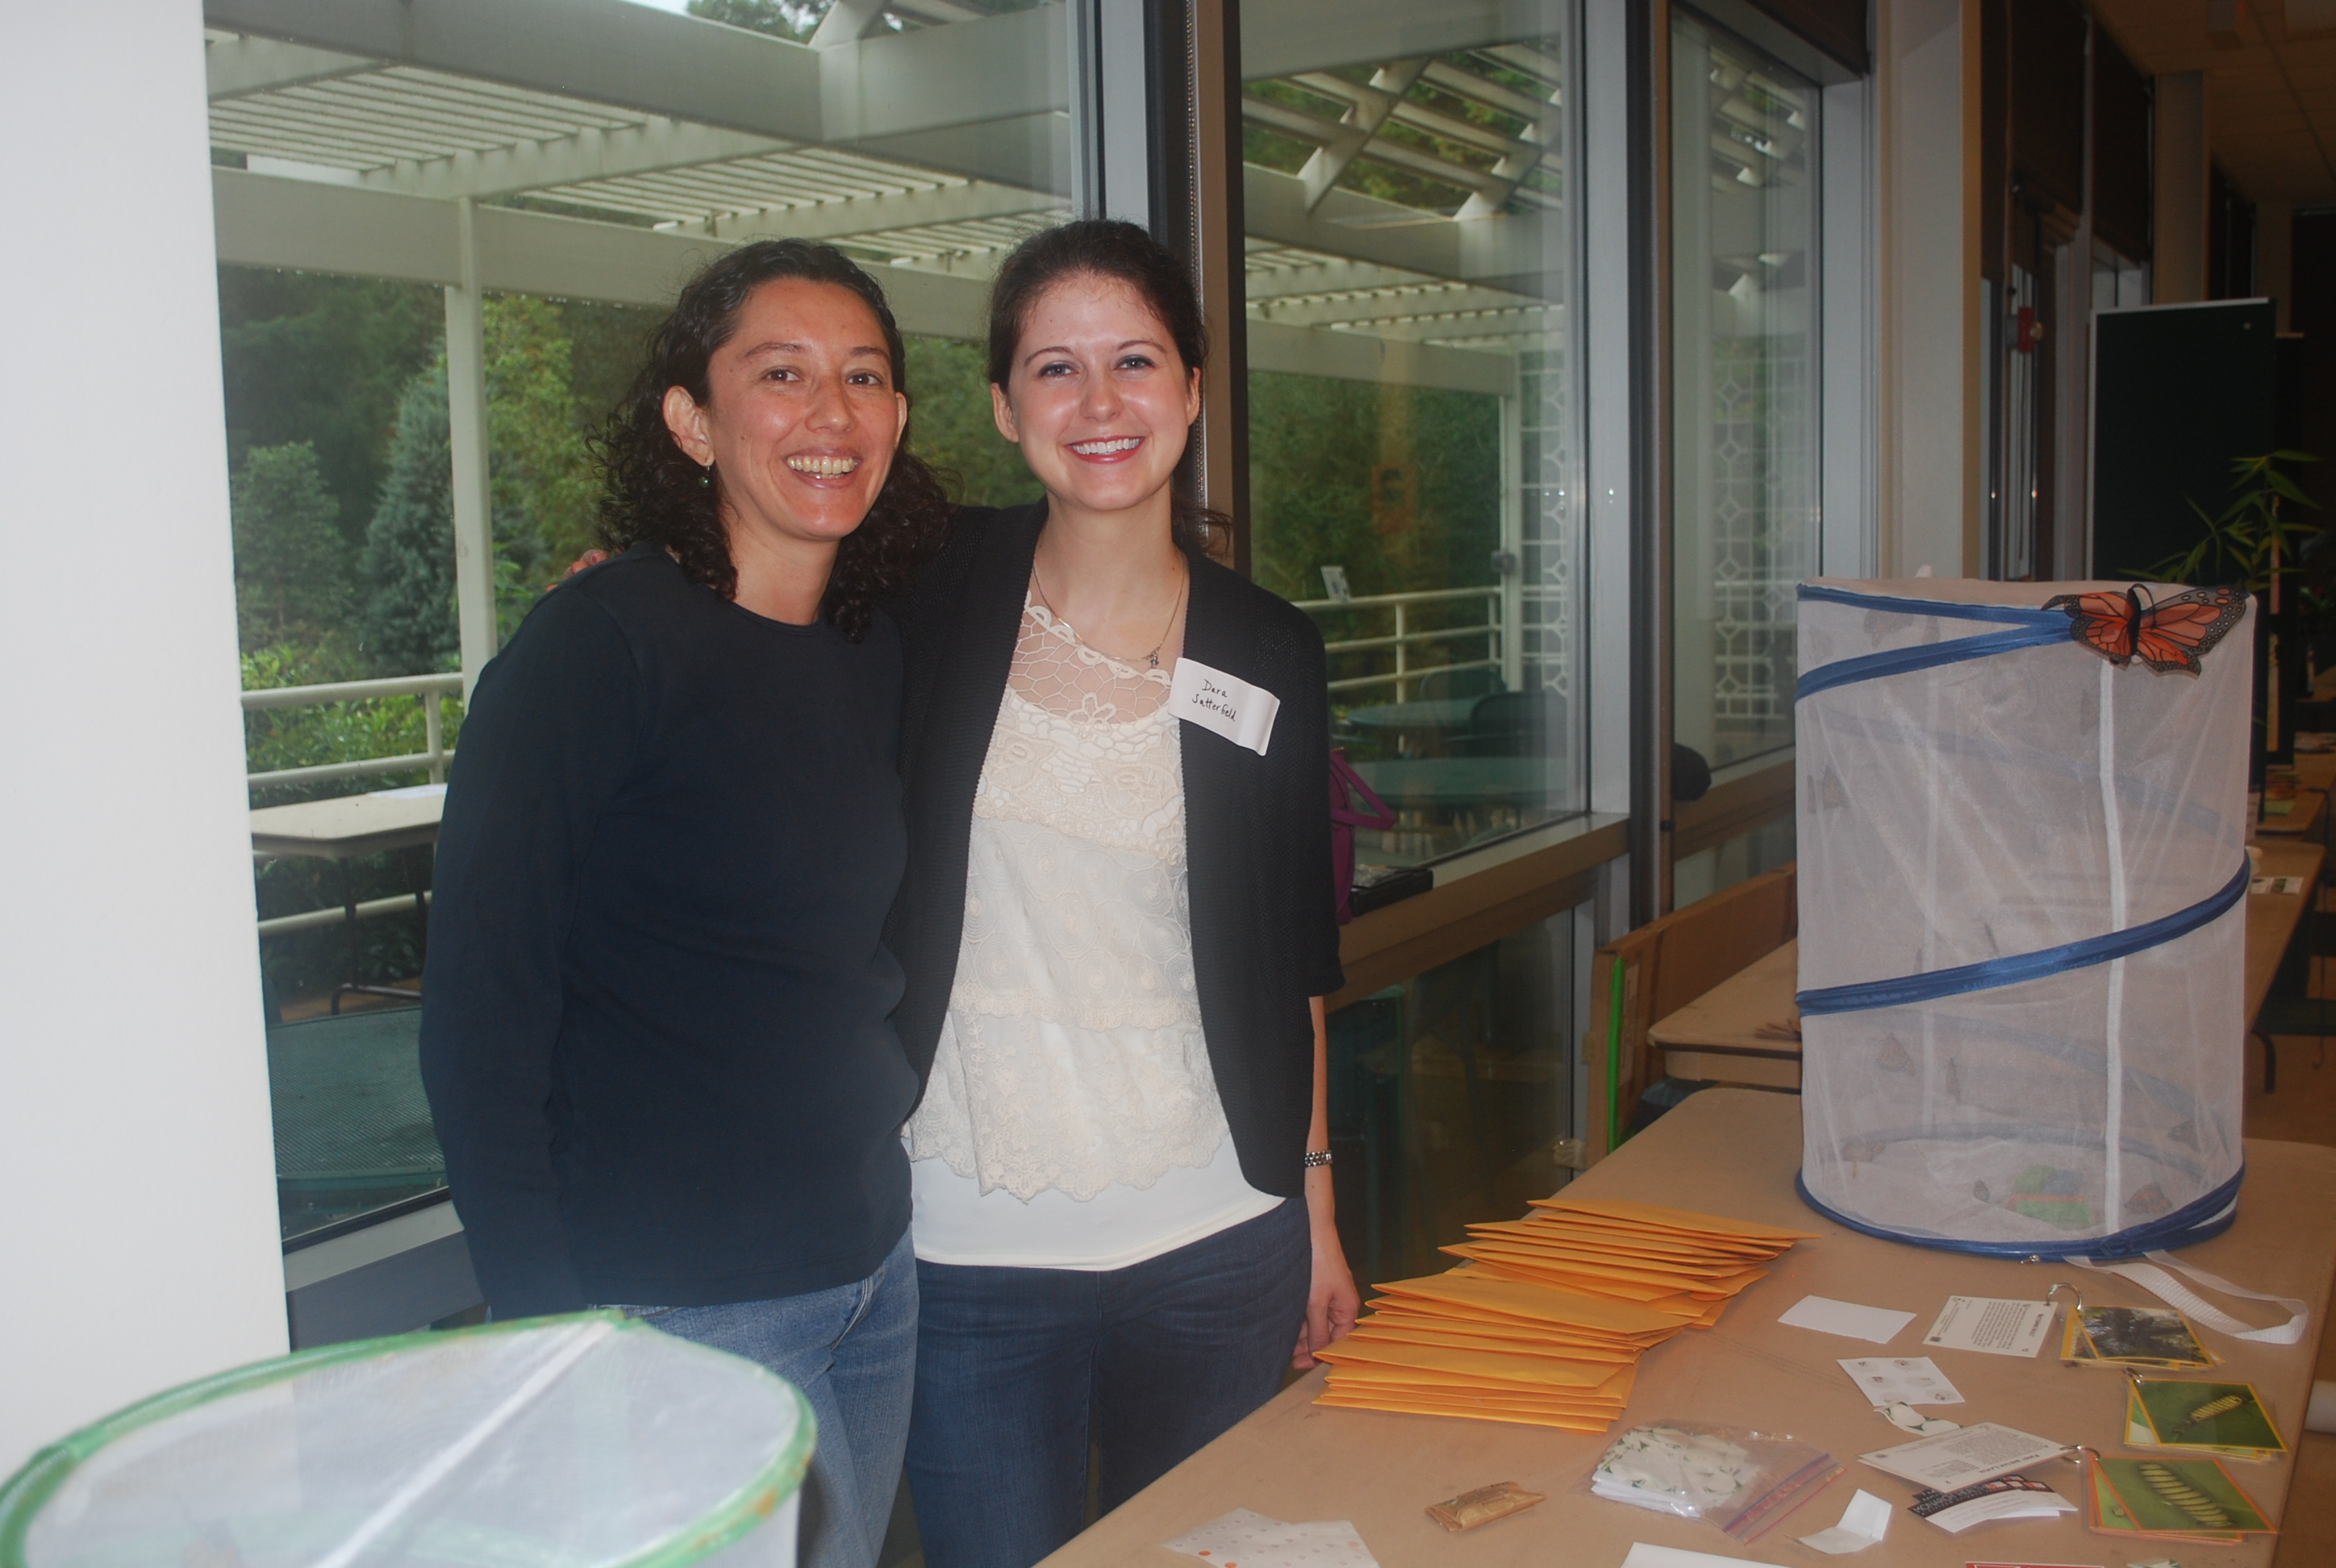 Dara Satterfield and Paola Barriga smiling after wrapping up a busy year at Insectival 2015